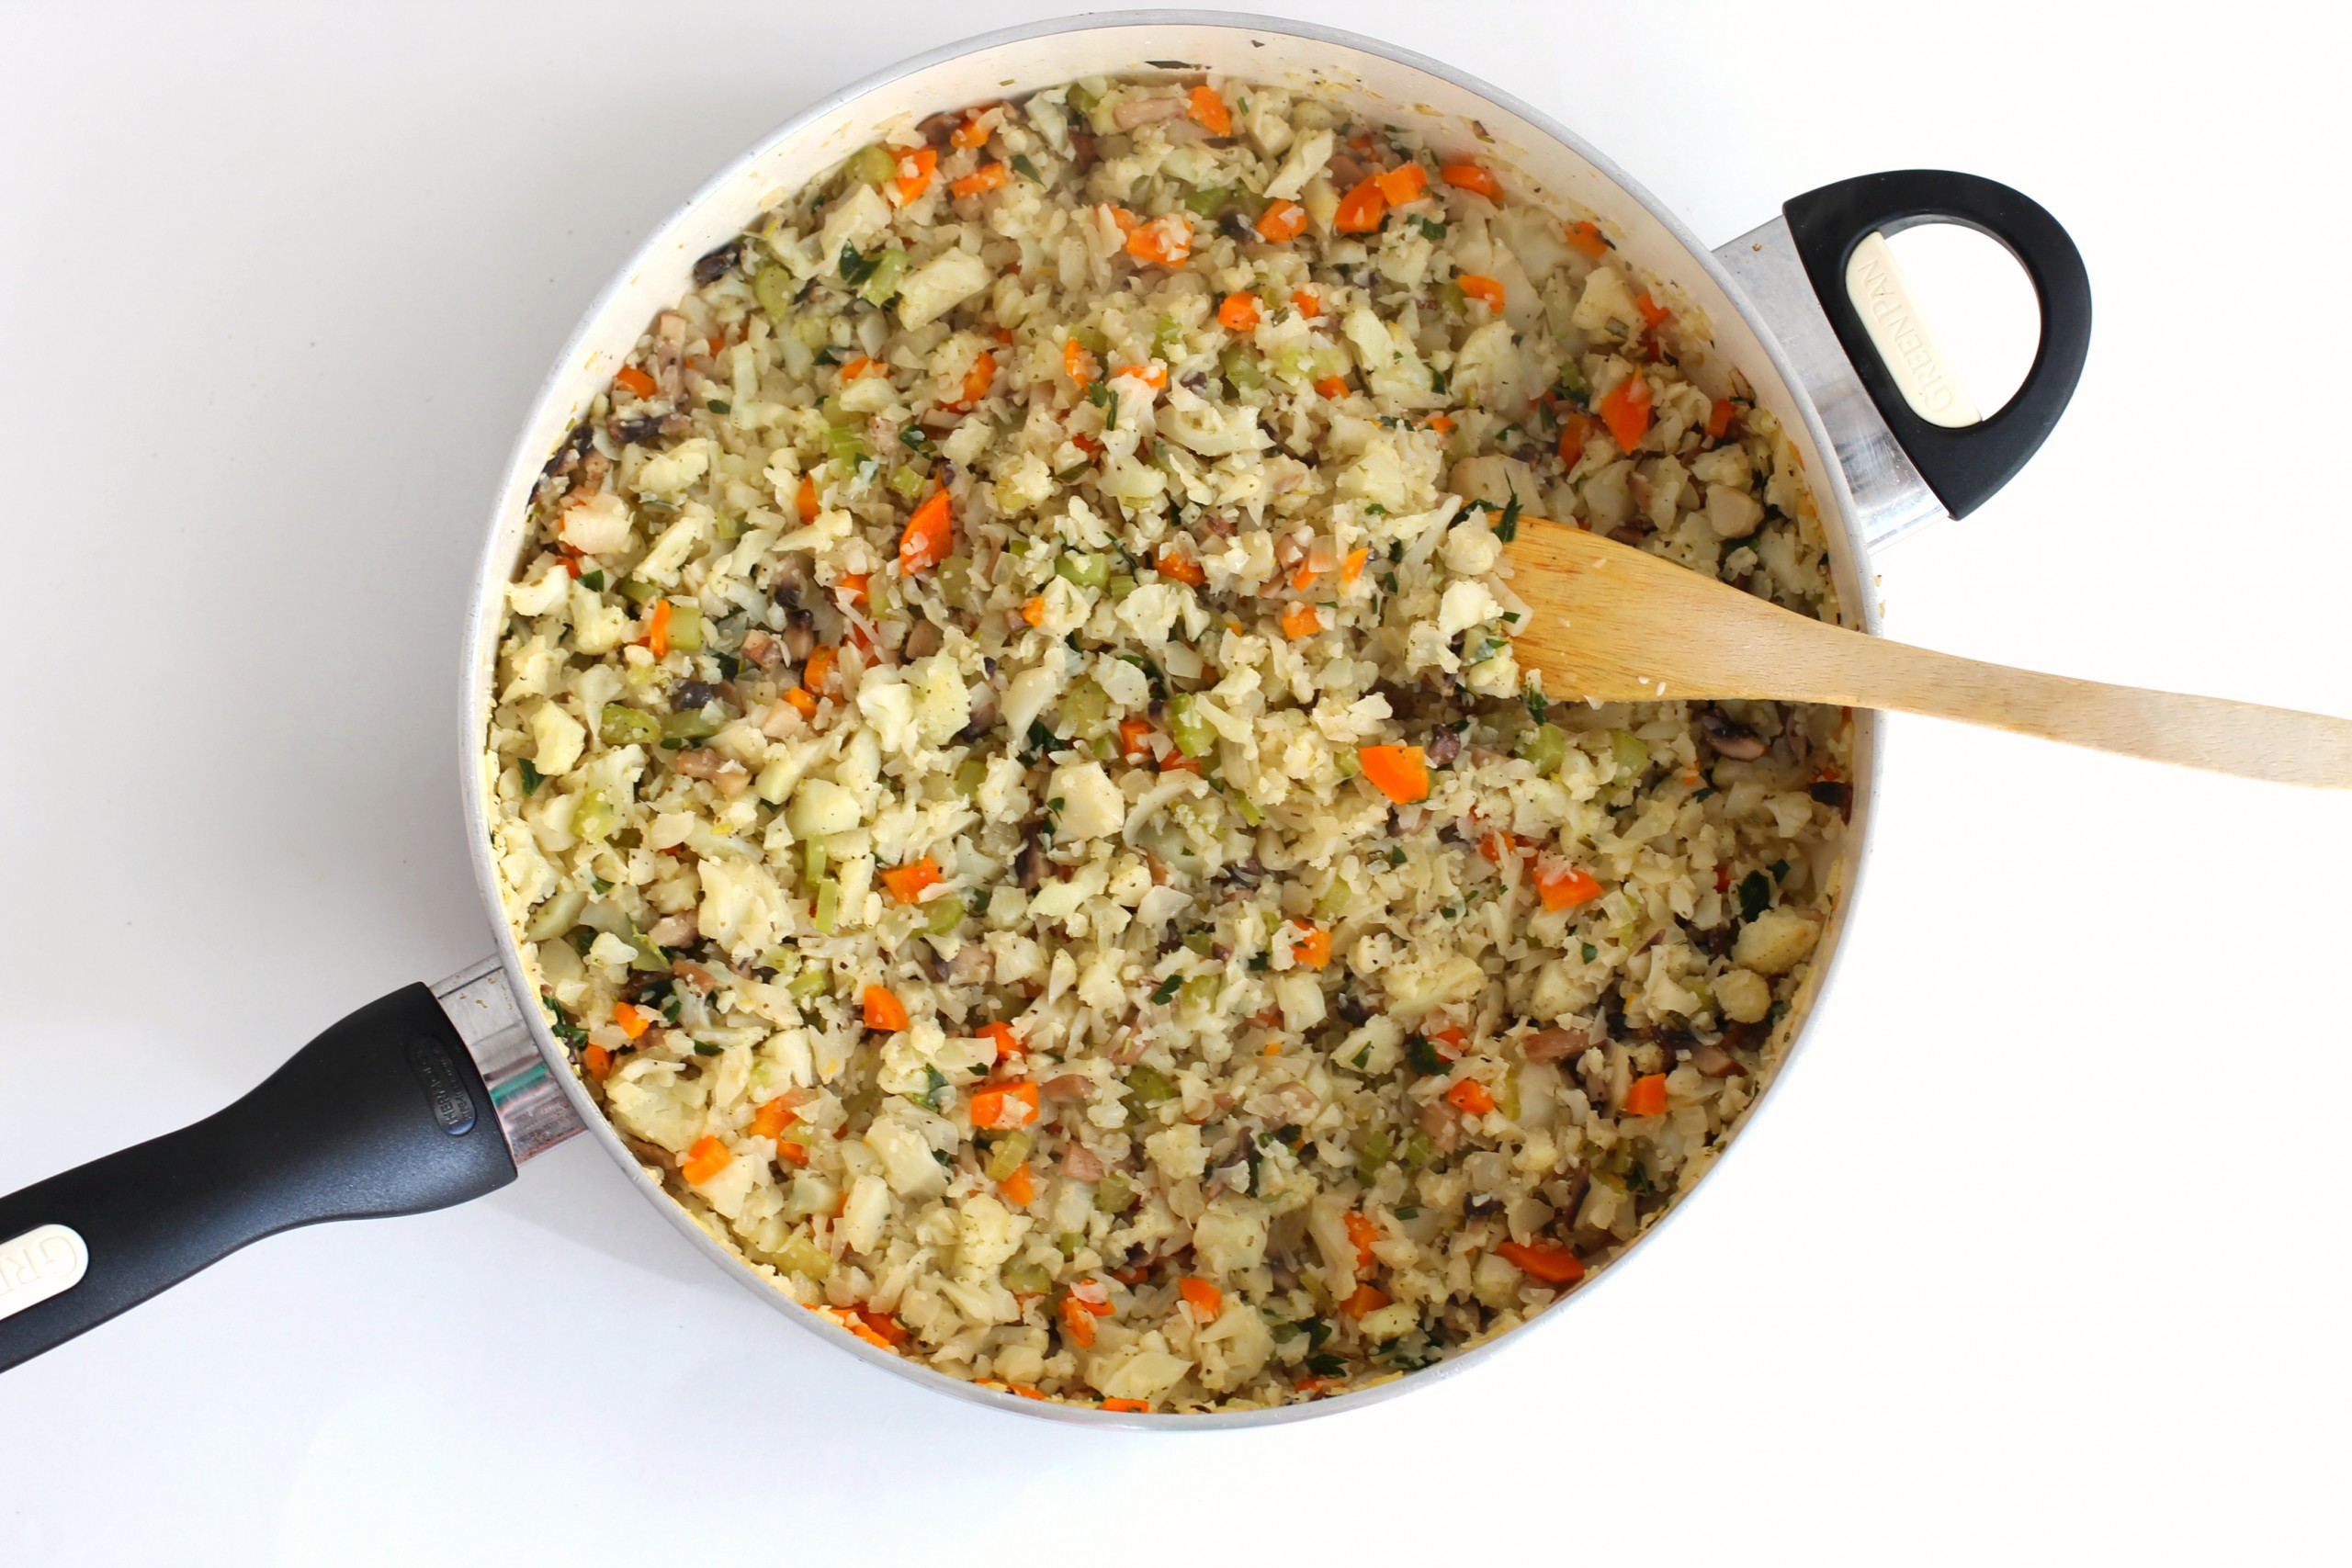 Try this cauliflower stuffing recipe for a low carb, Weight Watchers friendly, gluten free alternative.It's a great low carb stuffing recipe!